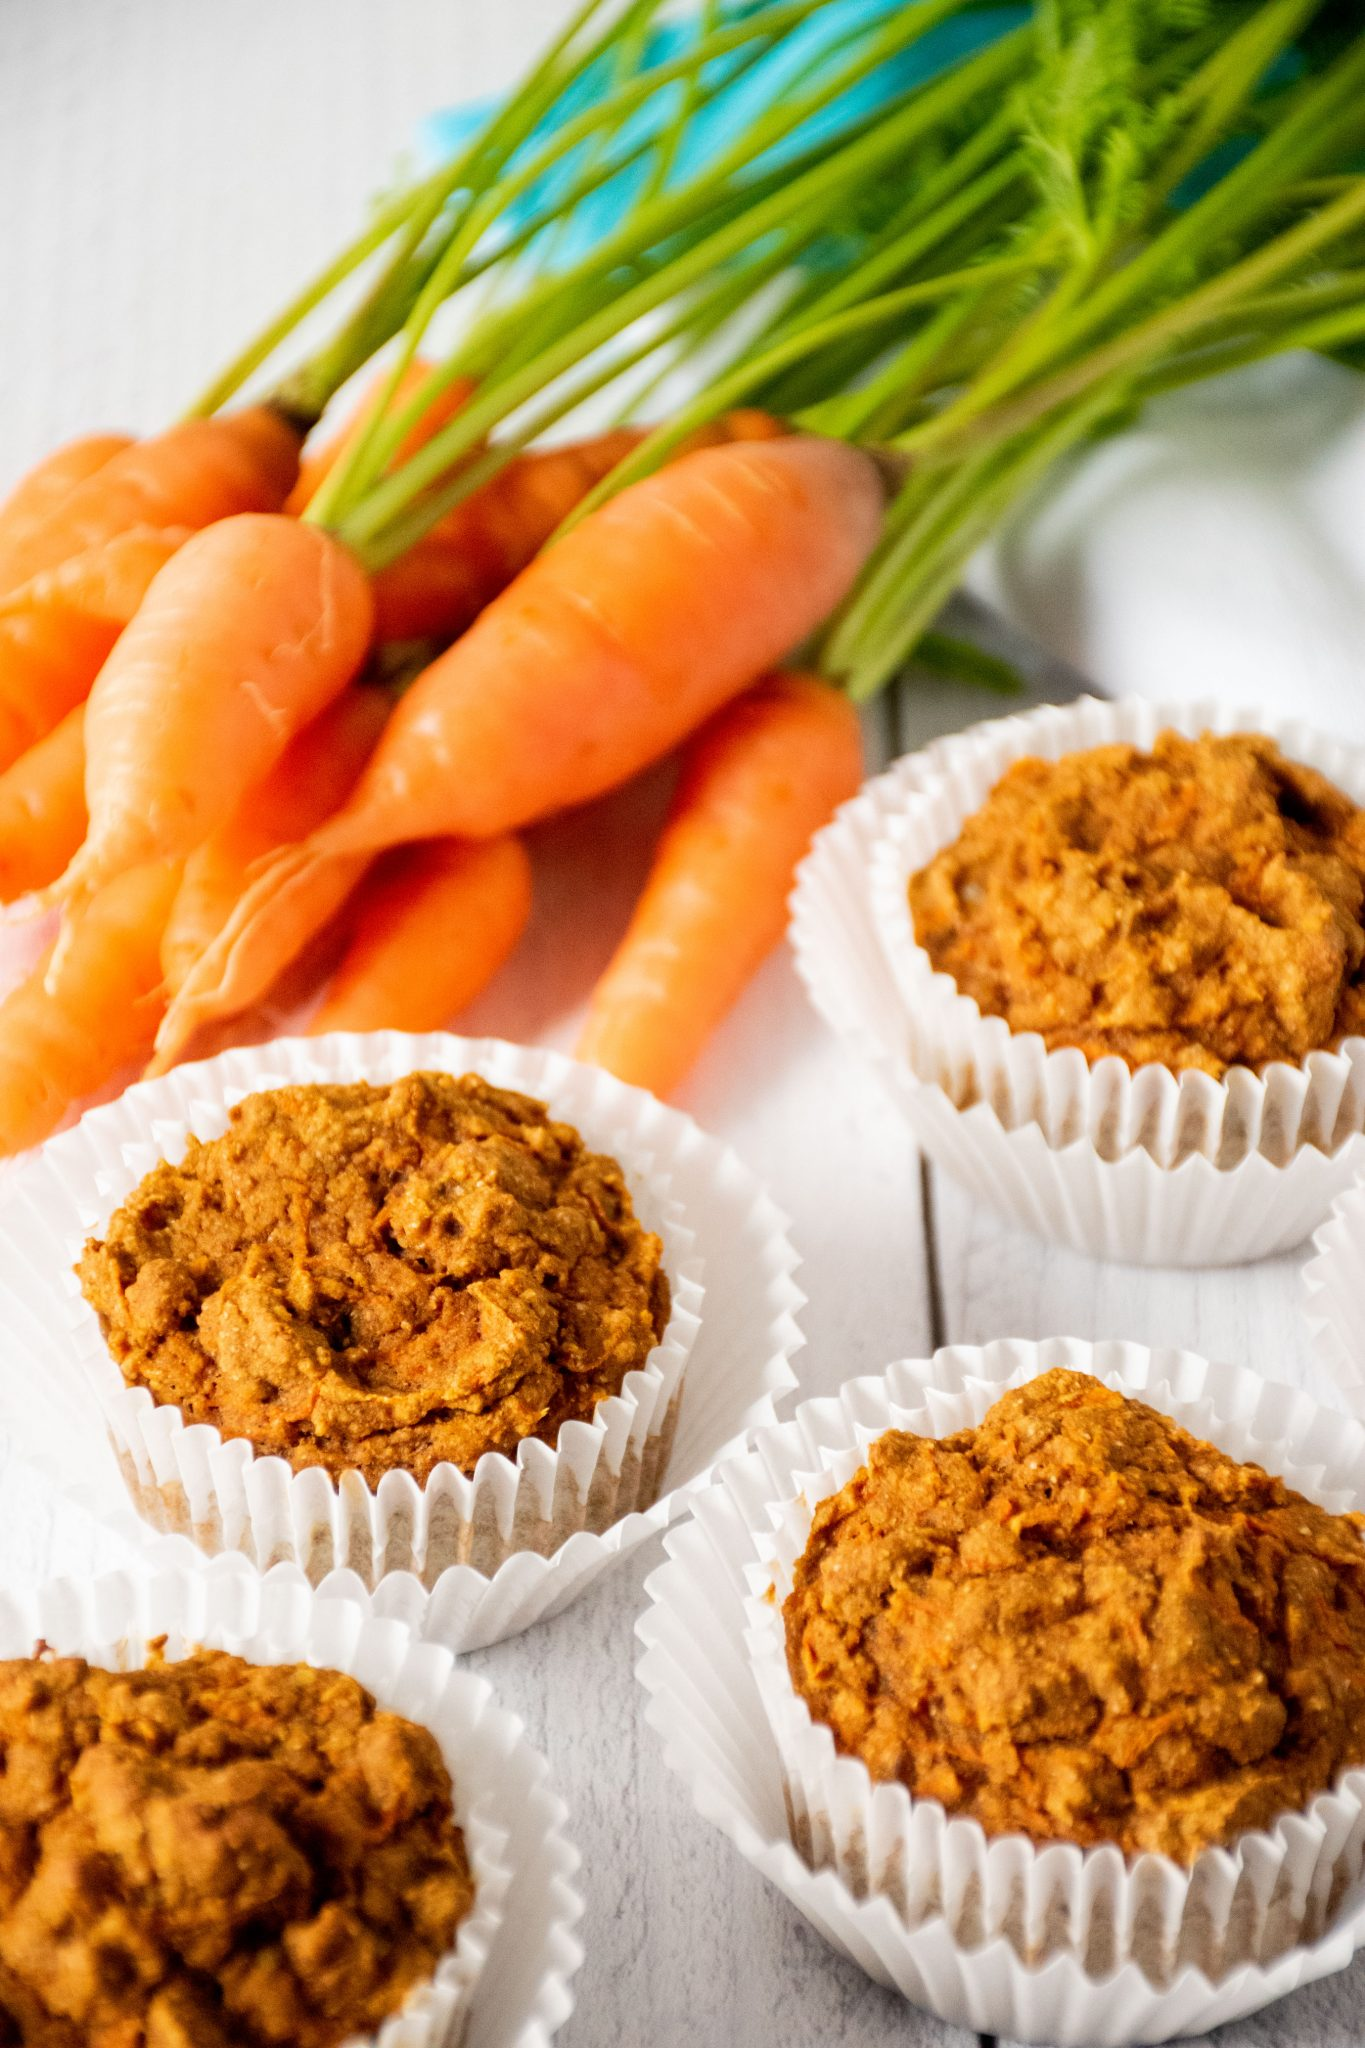 Muffins on a table with fresh carrots.